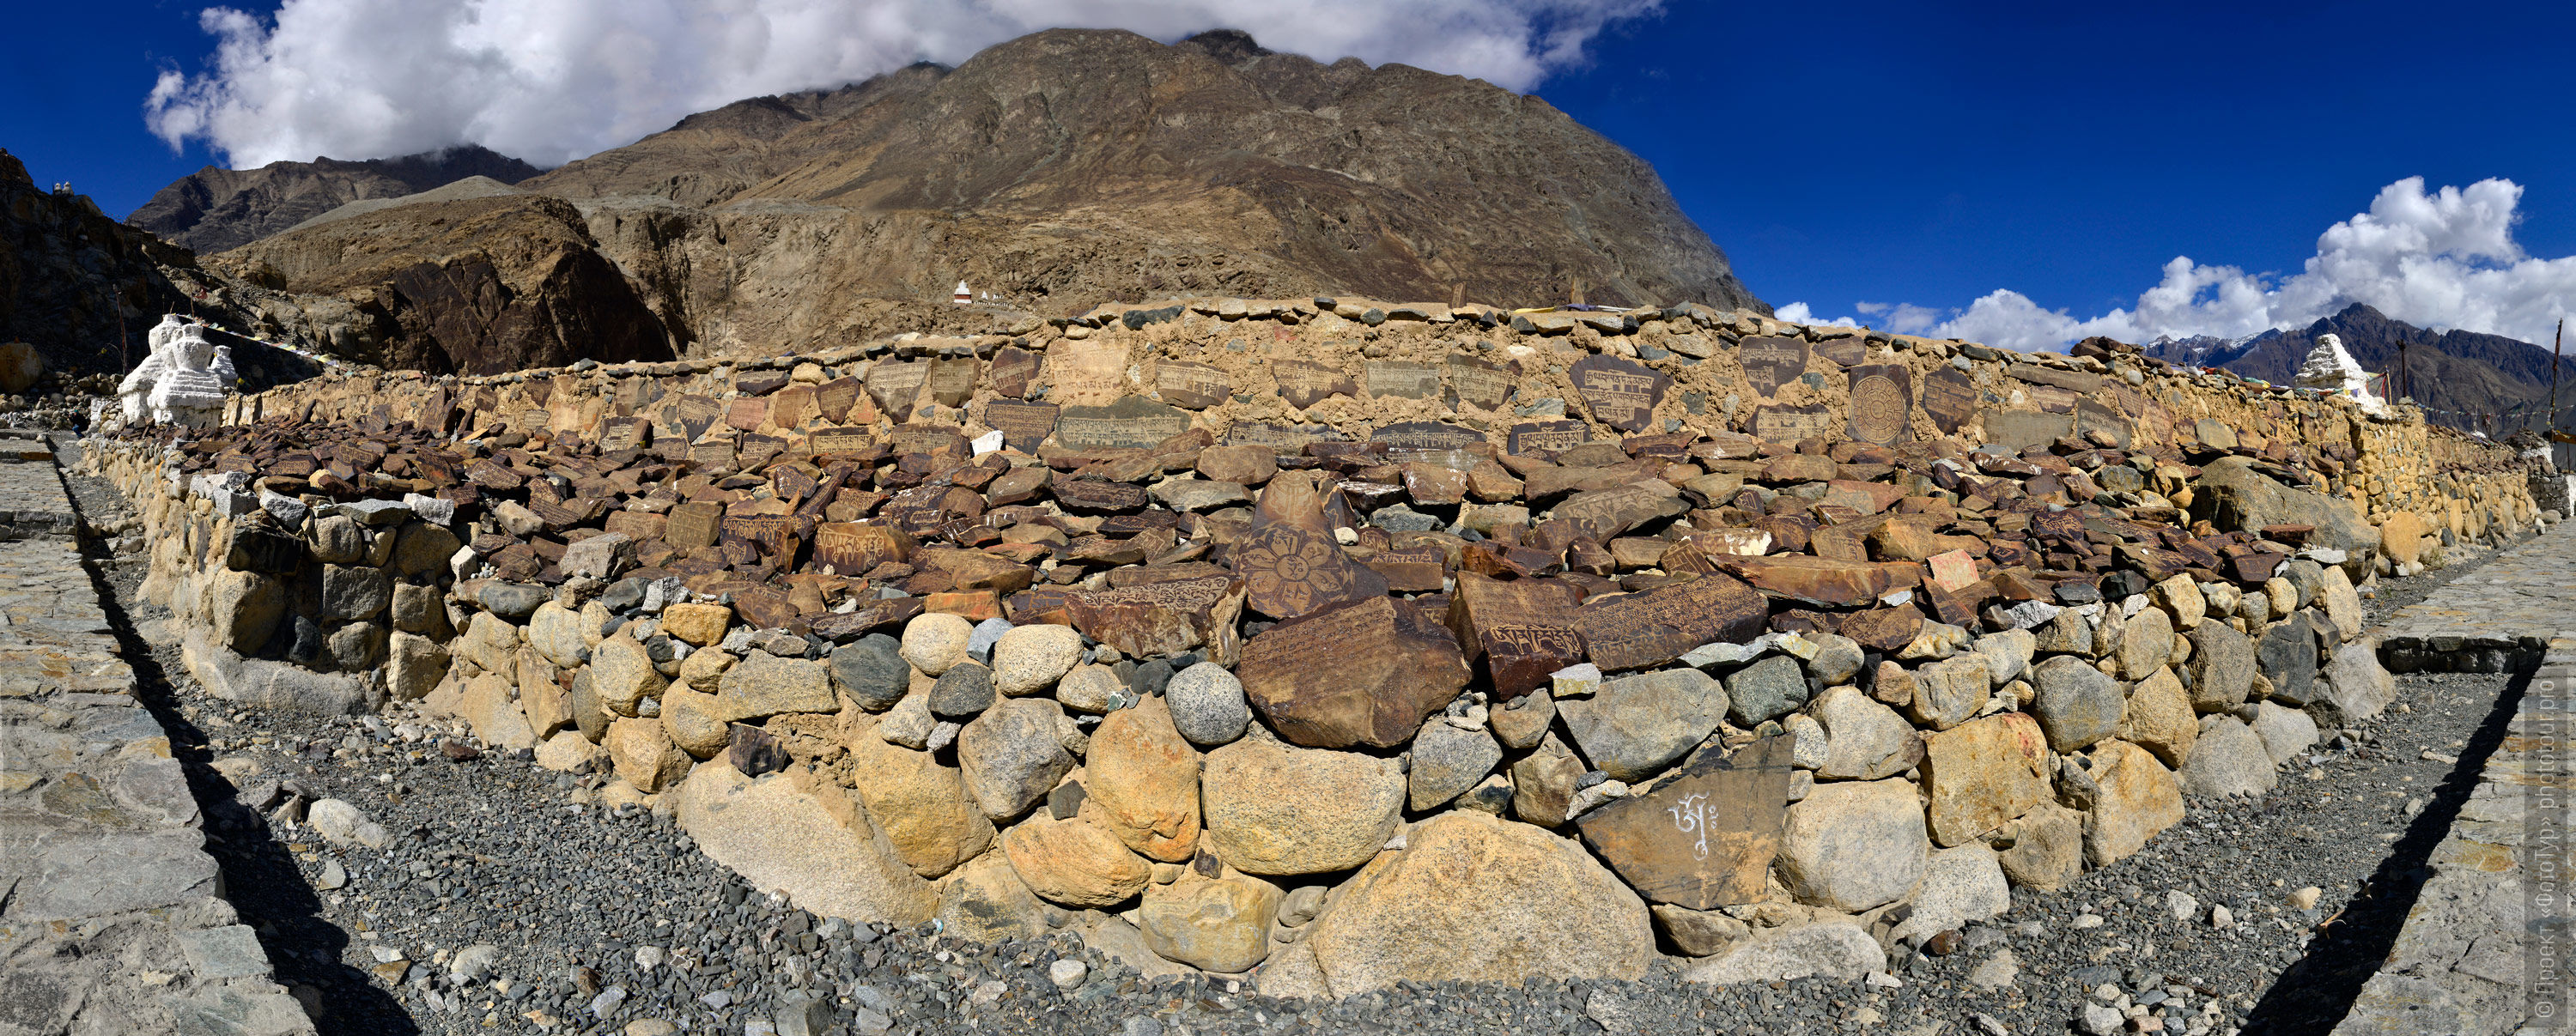 The biggest in Nybro wall with prayer stones. The settlement of the disc. Tour in Nubra valley, Ladakh, in October 2017.